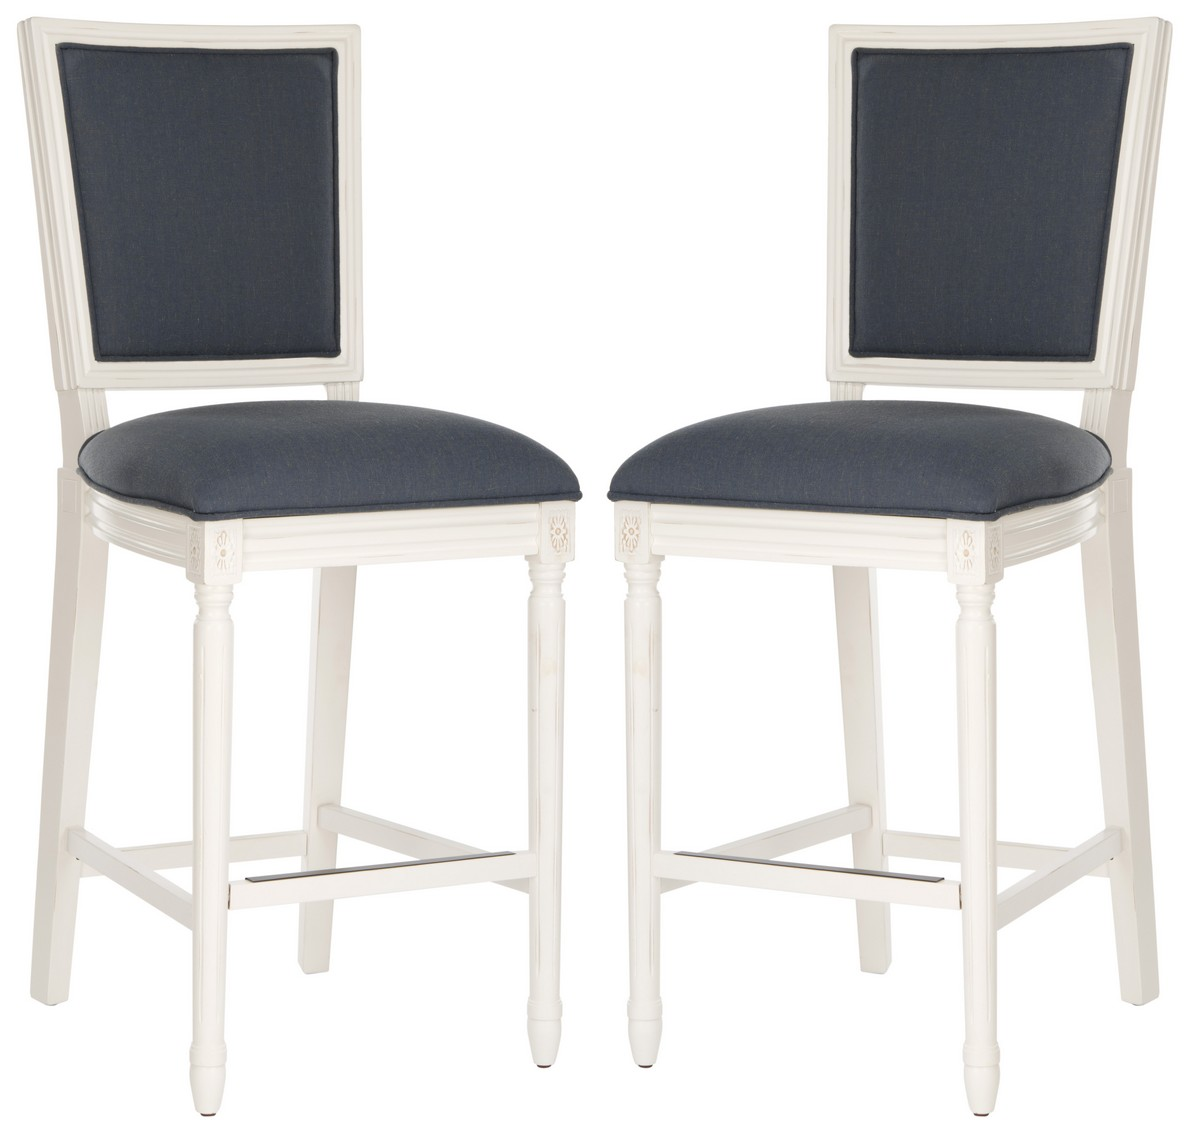 Stupendous Fox6246C Set2 Bar Stools Furniture By Safavieh Gmtry Best Dining Table And Chair Ideas Images Gmtryco